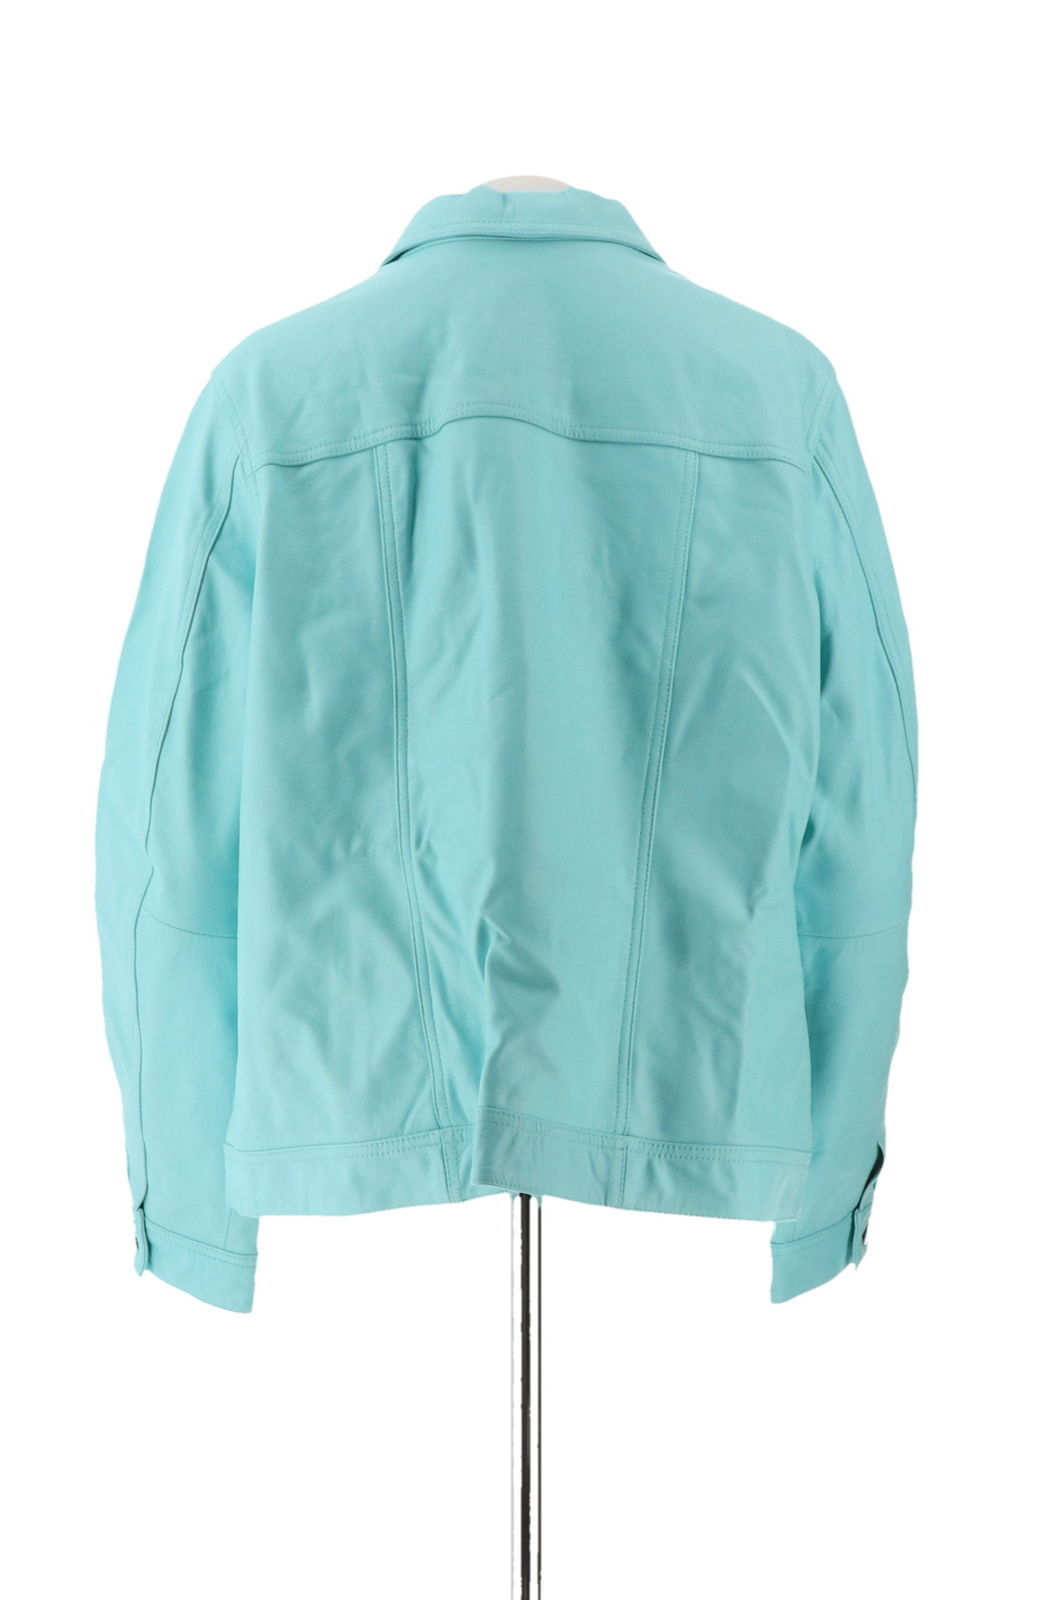 Denim & Co Lamb Leather Jean Jacket Light Turquoise XL NEW A272640